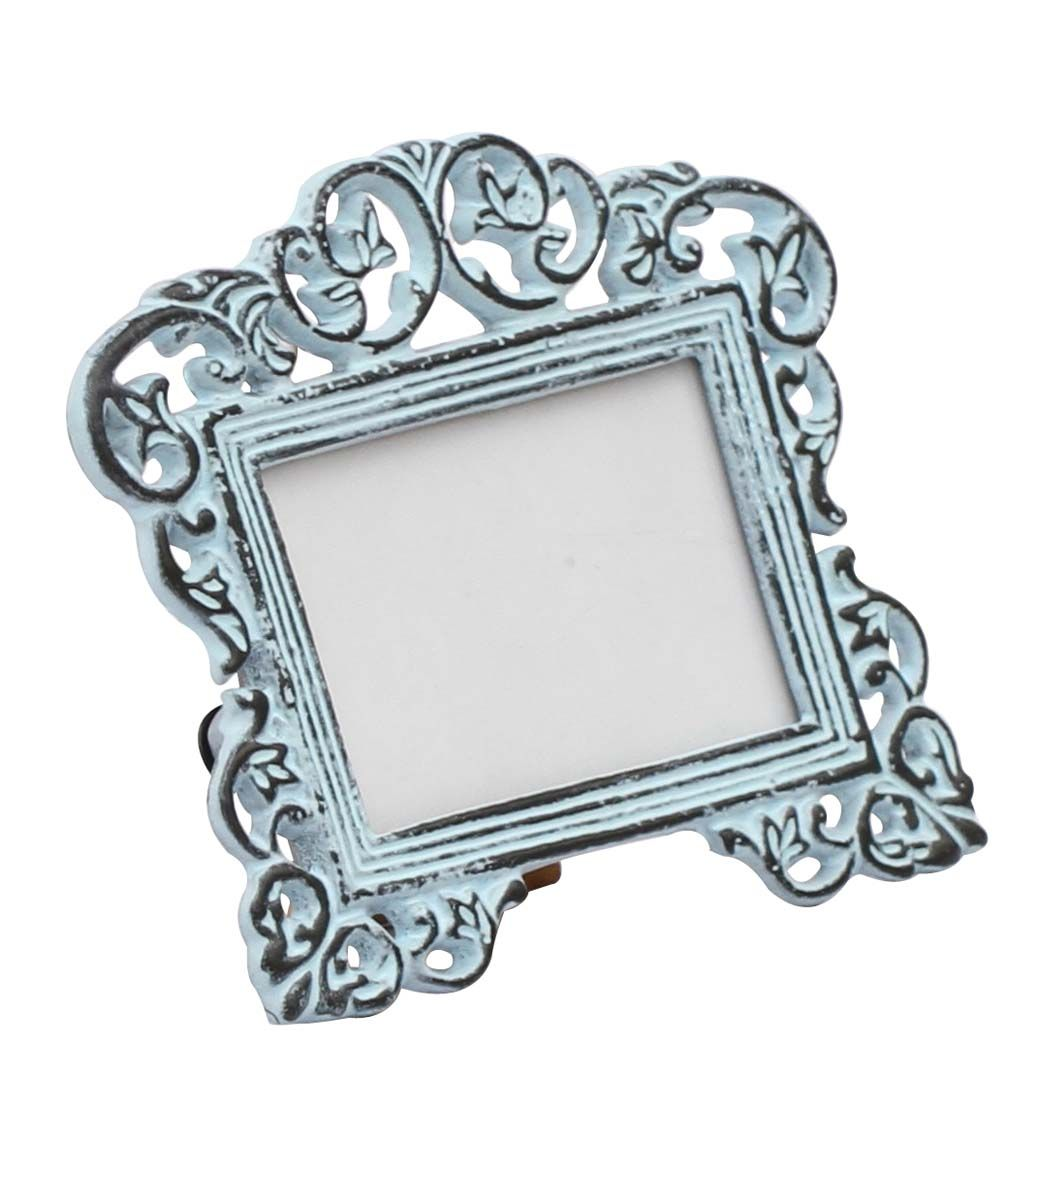 Bulk Wholesale Handmade Metal Photo Frame in Sky Blue Color with ...